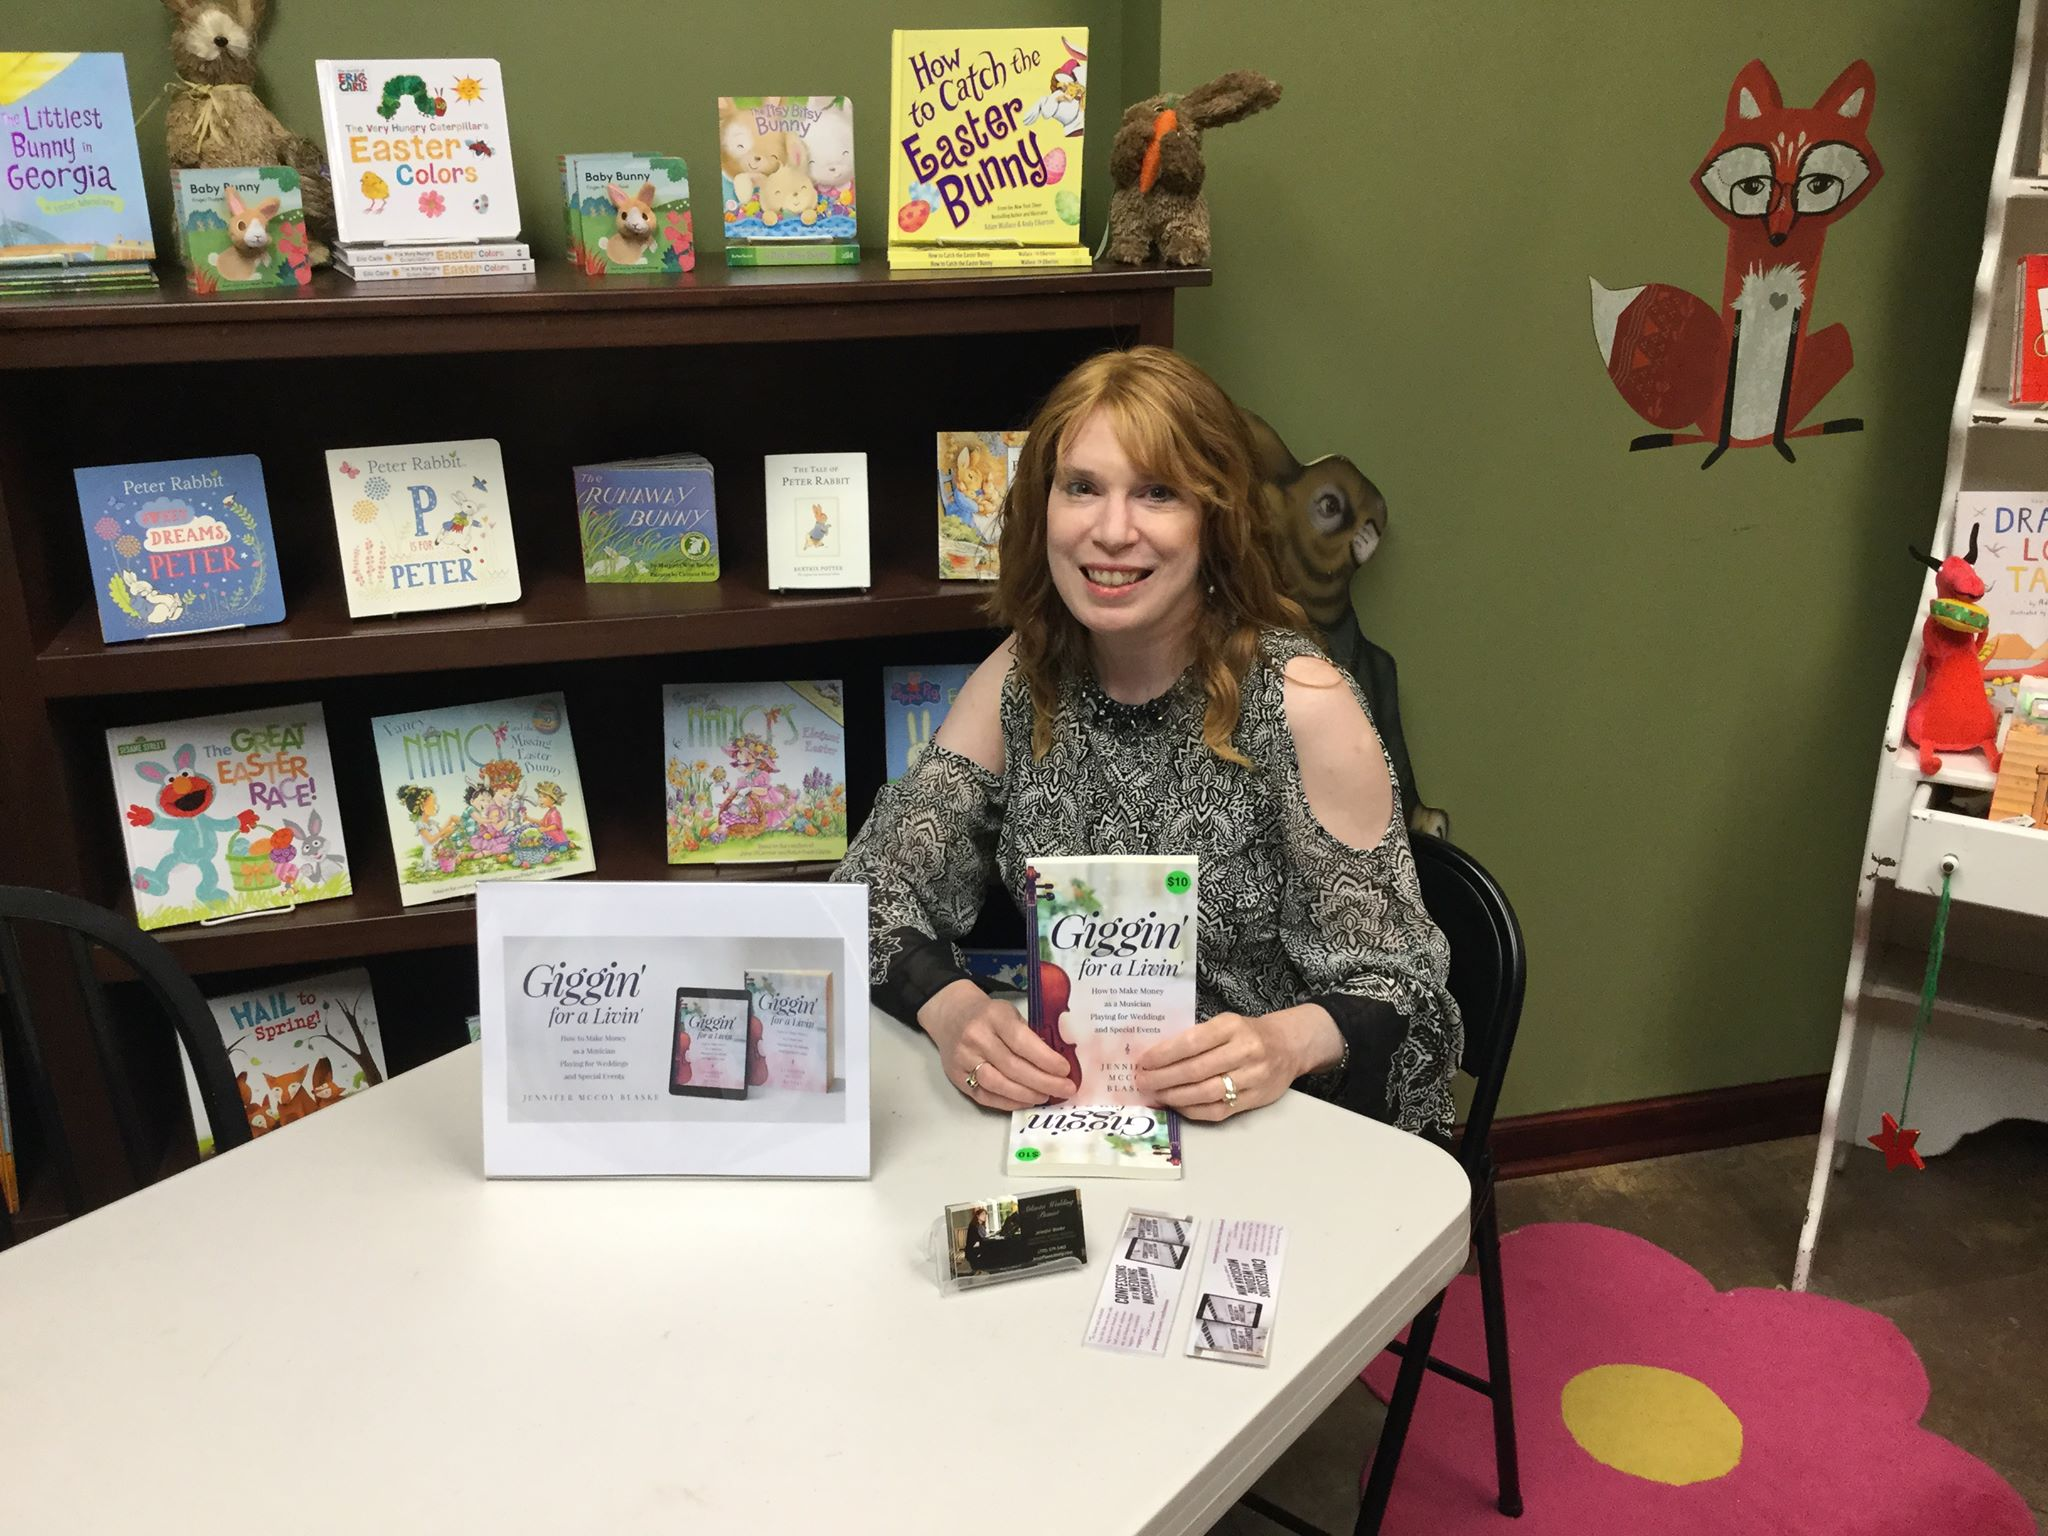 Signing books at Emerging Author Night at FoxTale Book Shoppee